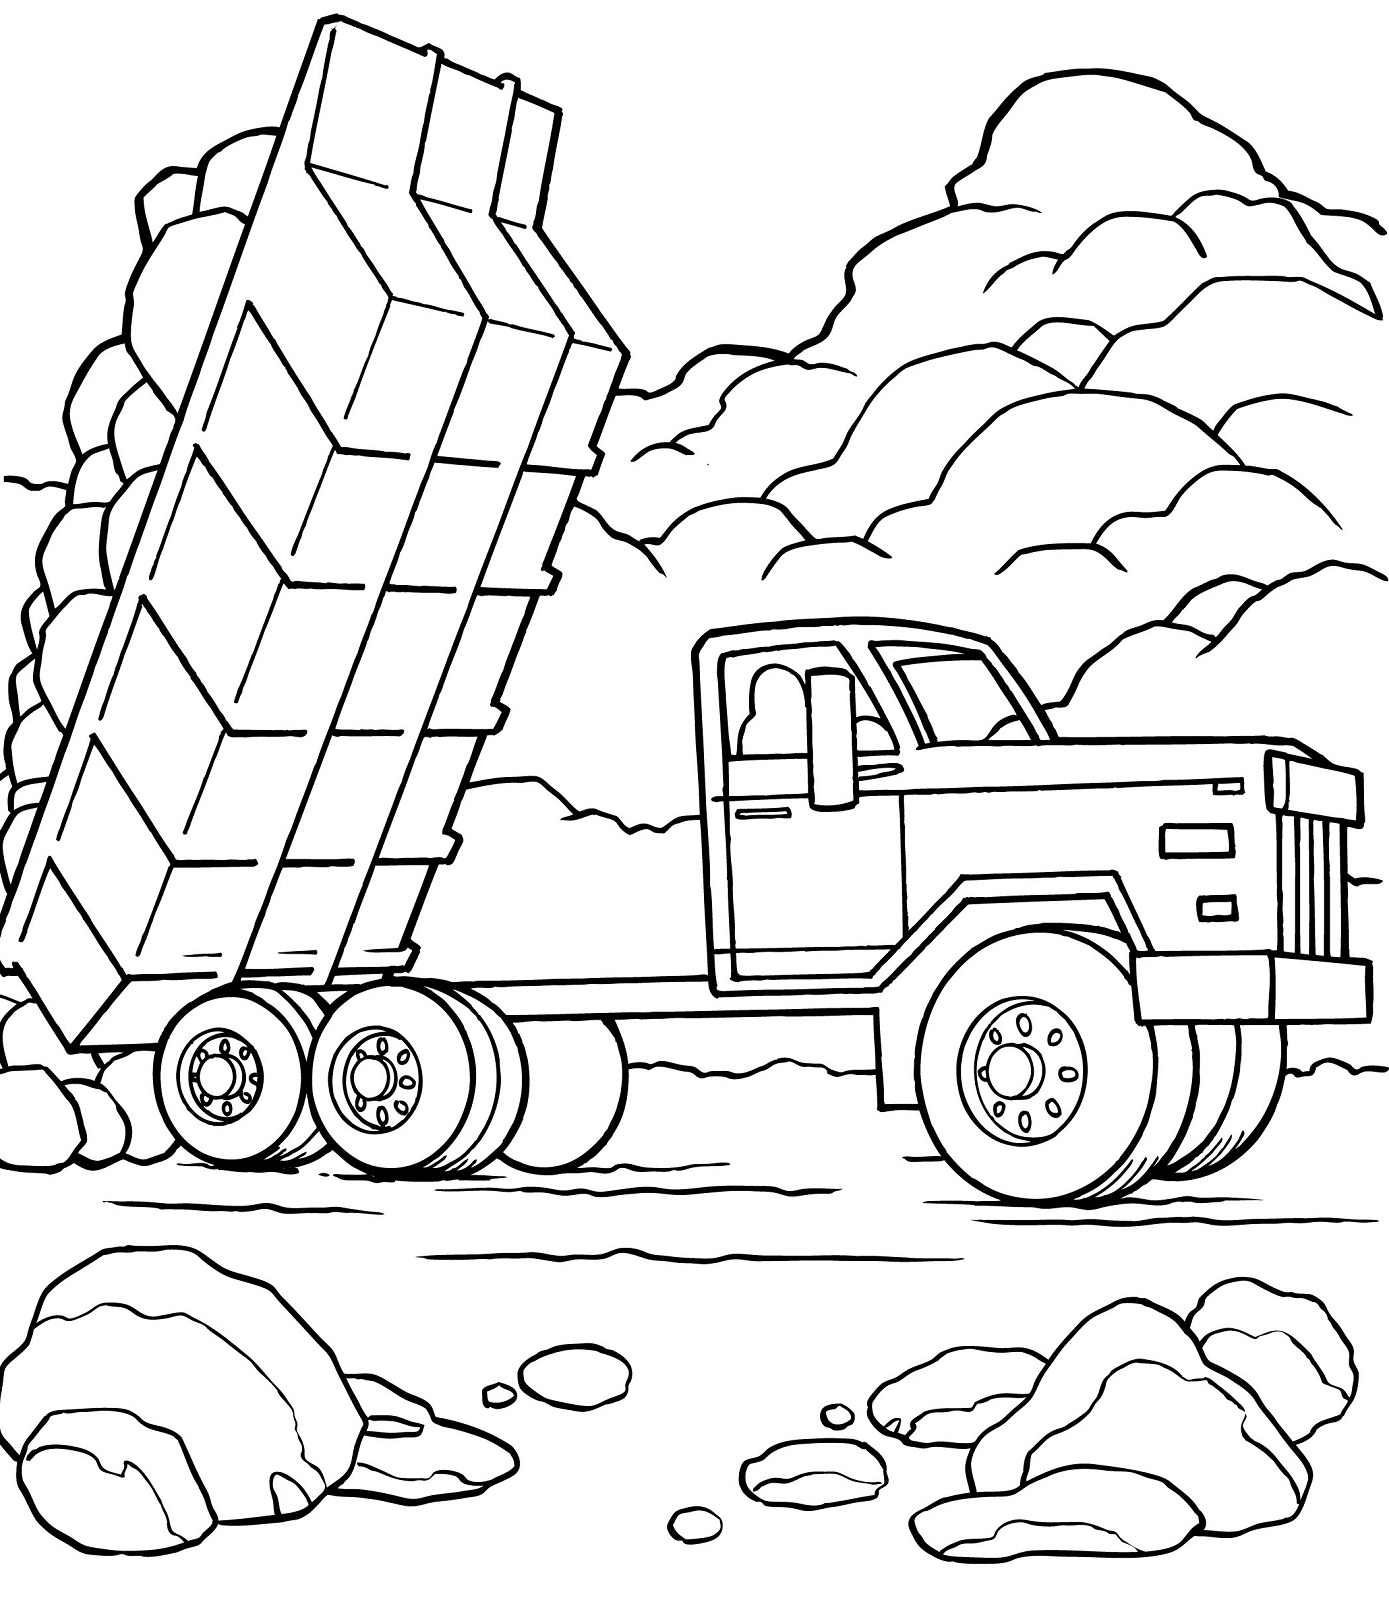 large construction vehicles coloring pages